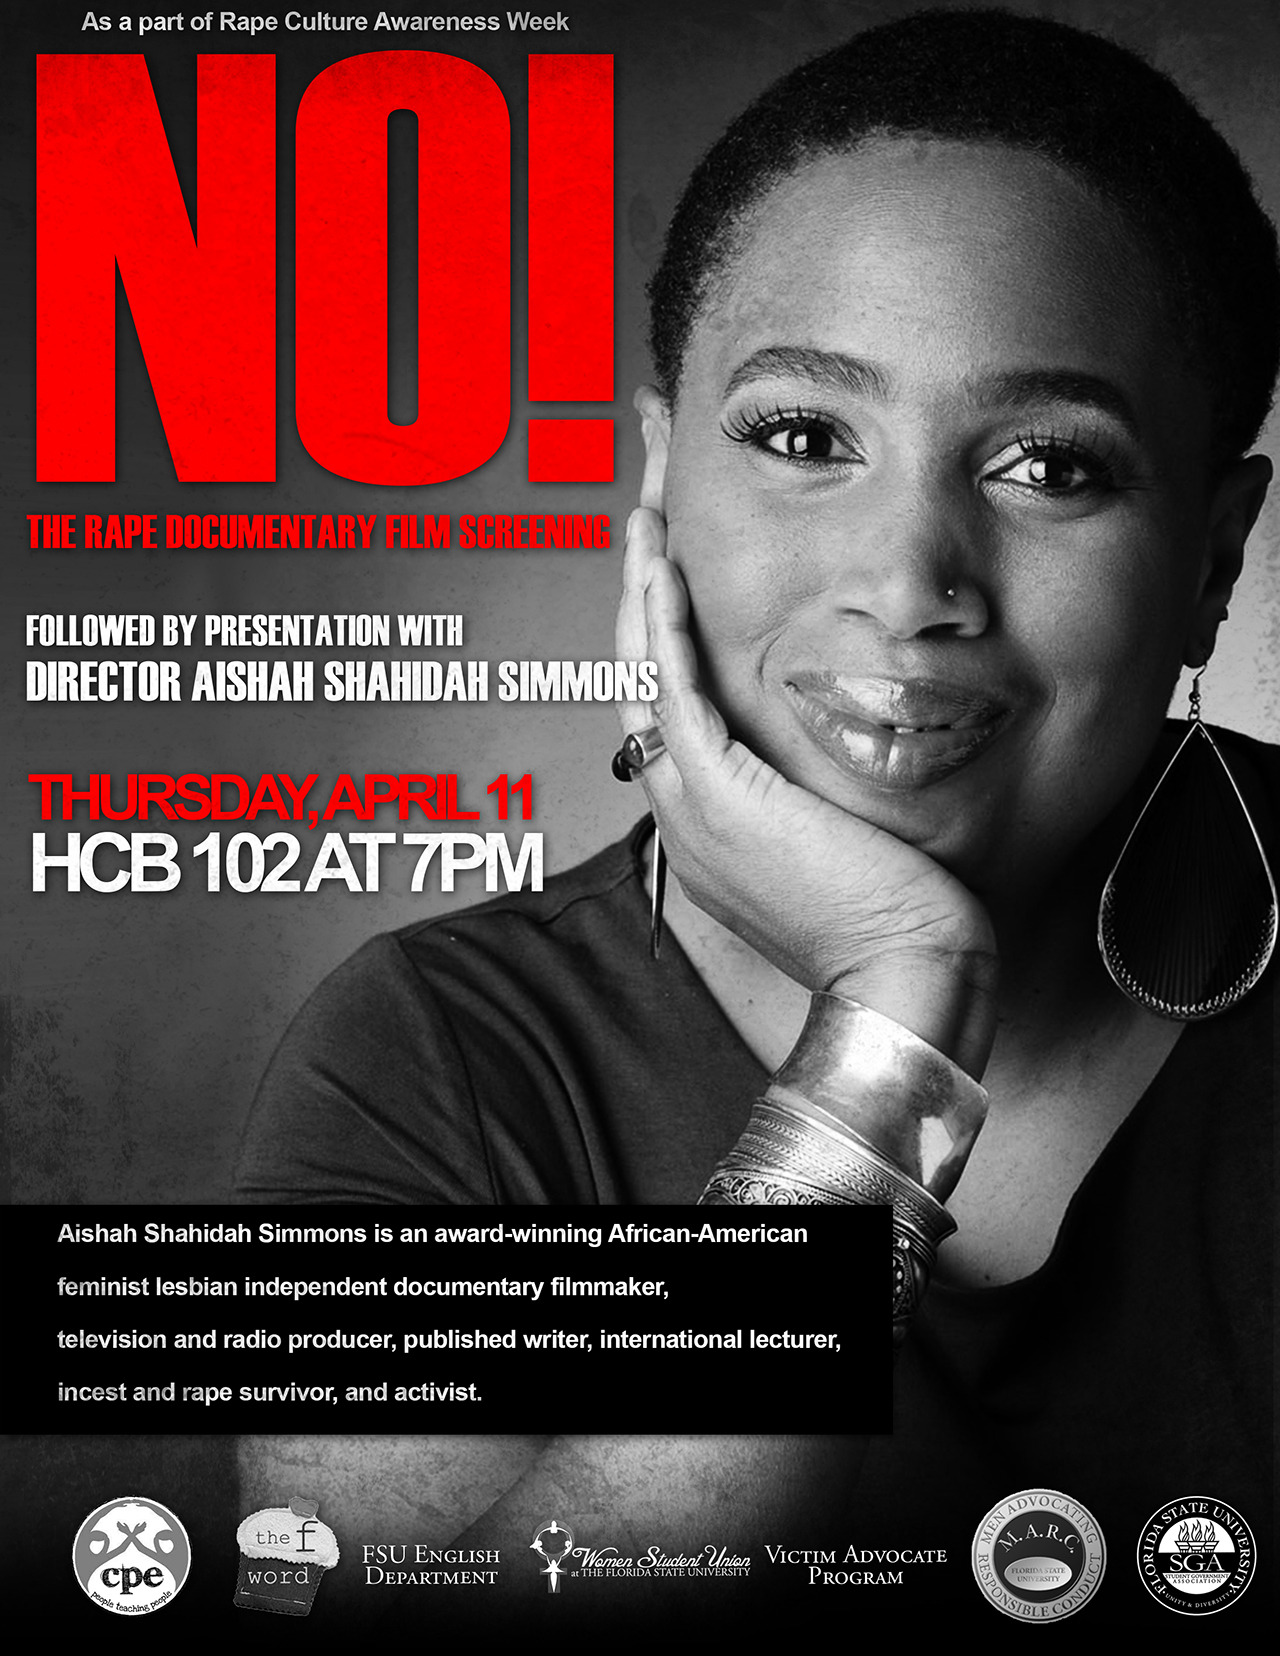 Screening and discussion of NO! The Rape Documentary at Florida State University at 7pm on Thursday, April 11, 2013. Gratitude Shout Out to my Brother/Comrade Dr. David Ikard for his critical leadership role in making my presence on FSU's campus a reality.